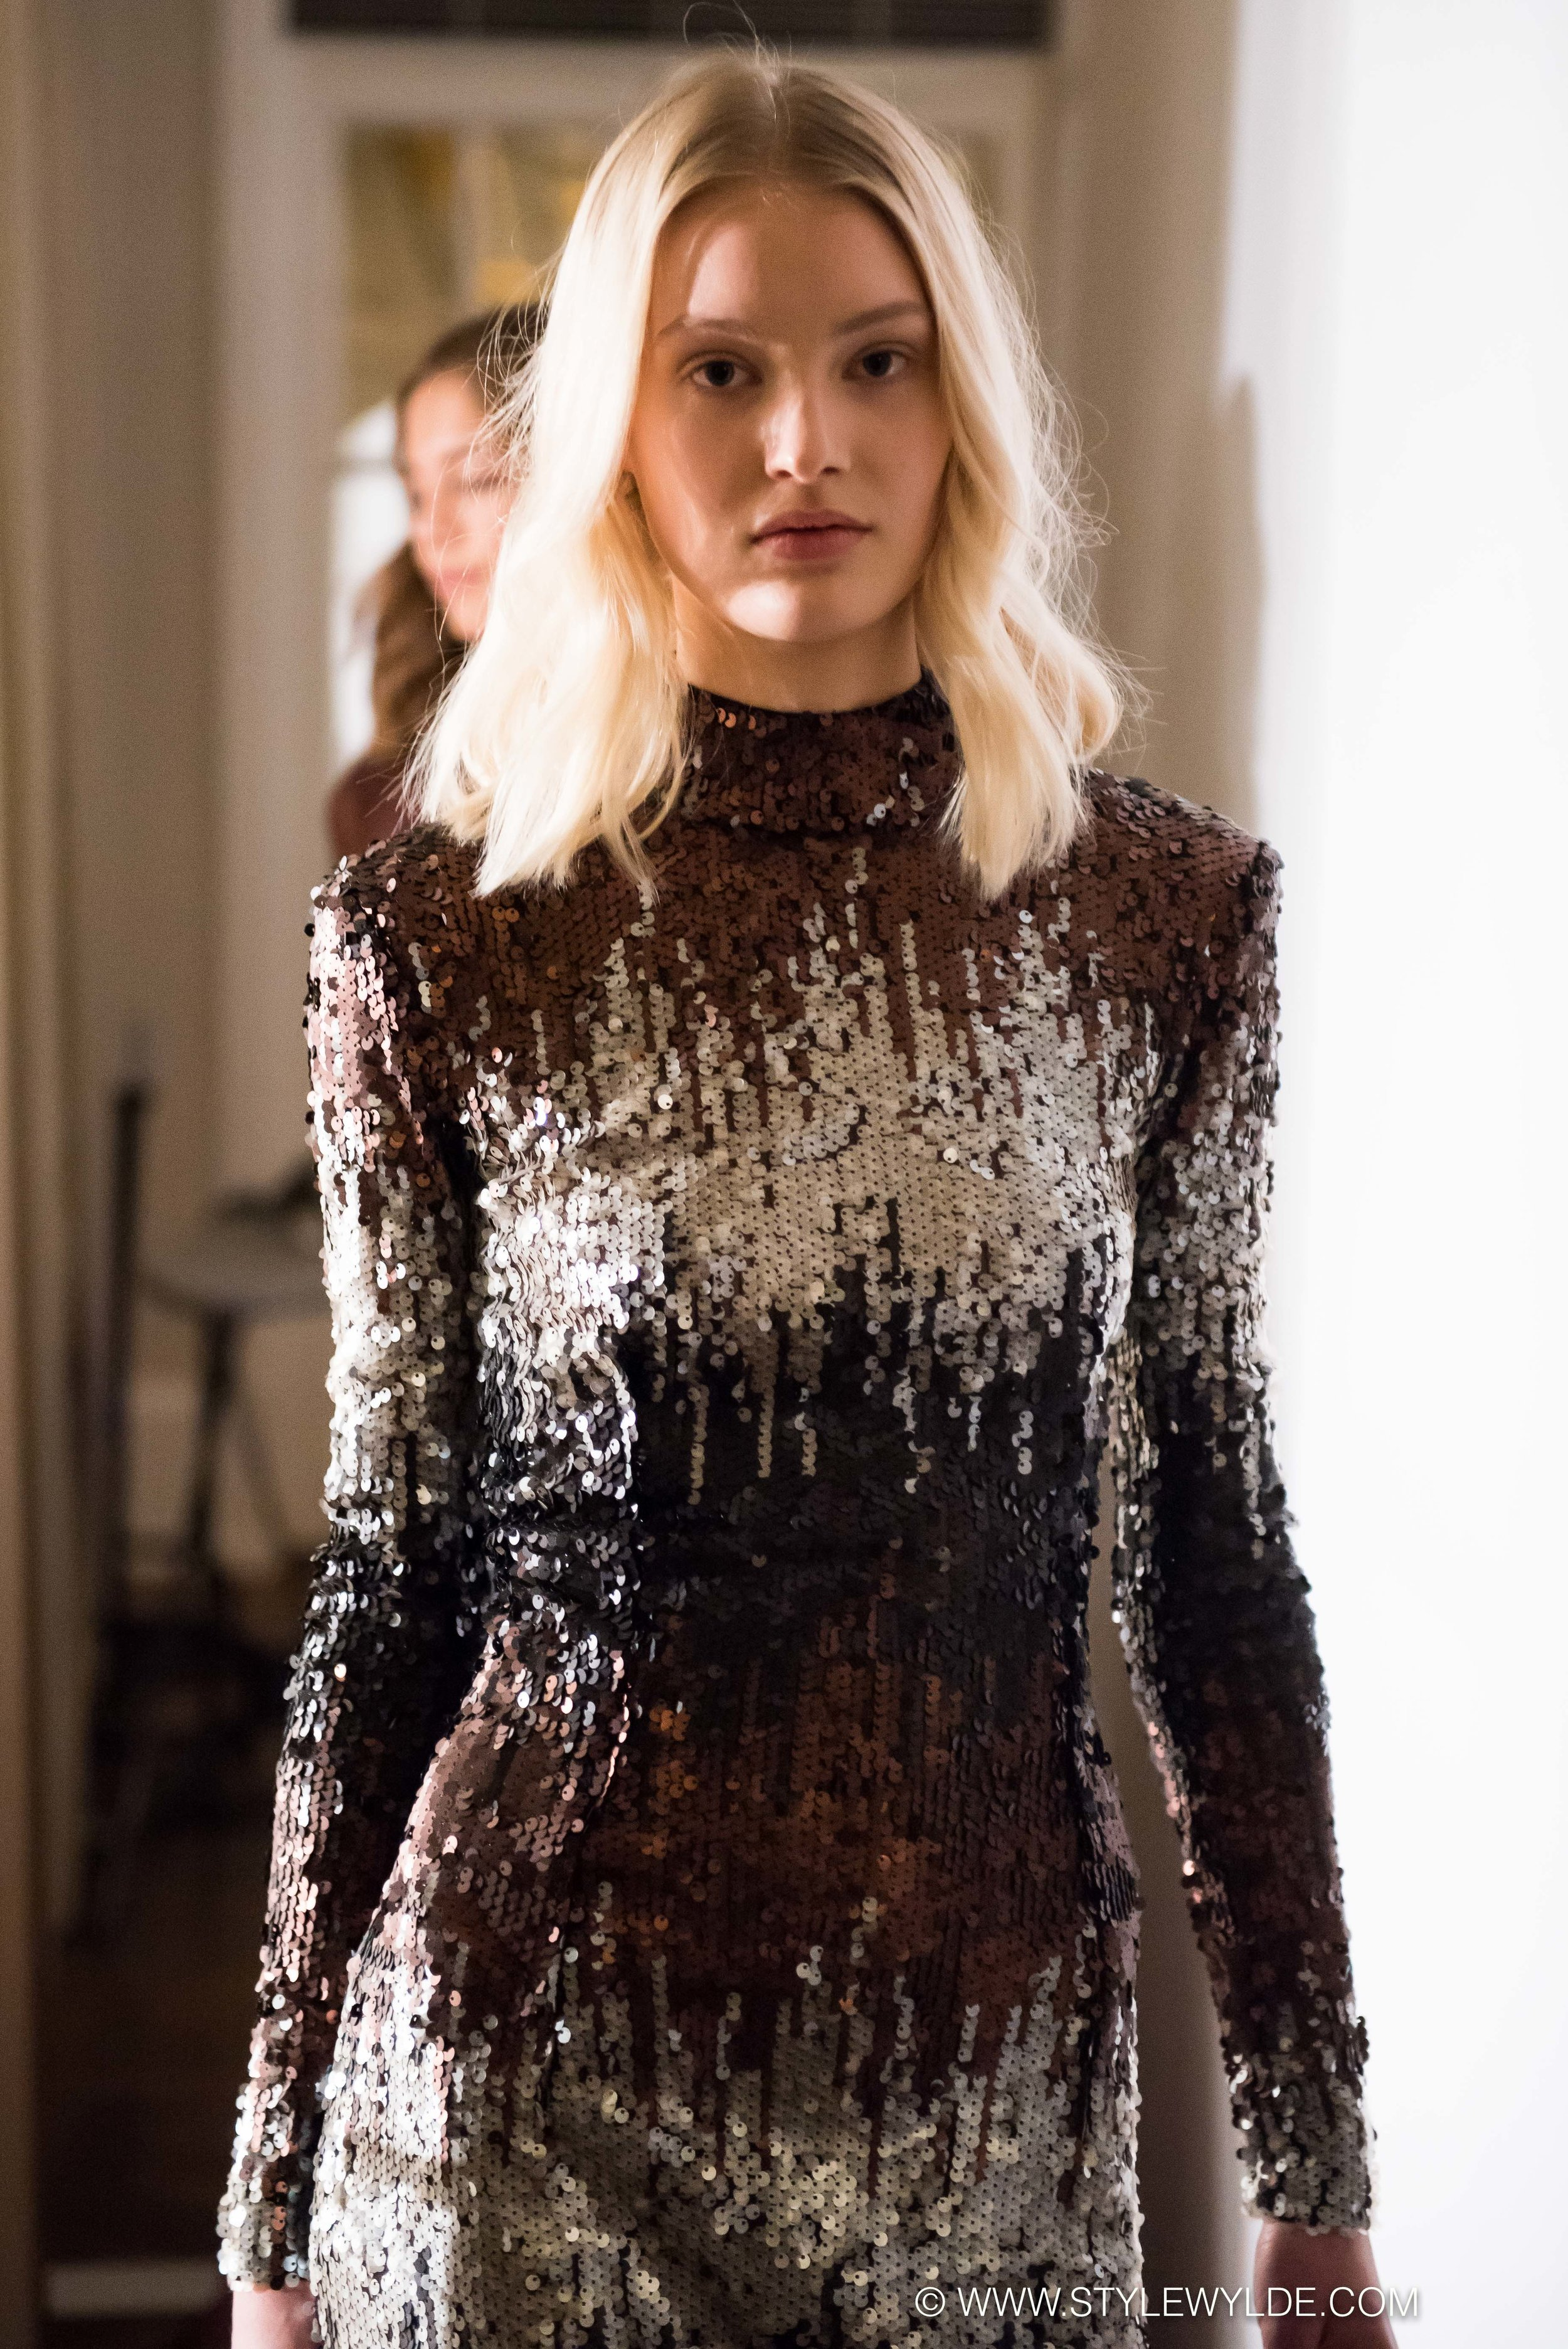 Dream girls - Ornate embroidery, lace, silk taffeta and a dazzling array of sparkling sequins made the Jesper Høvring Fall 2018 show the glamor-high of Copenhagen Fashion Week.Fit for everything from an Oscar red carpet, to a royal wedding day, these were the looks that little girls everywhere dream of wearing.